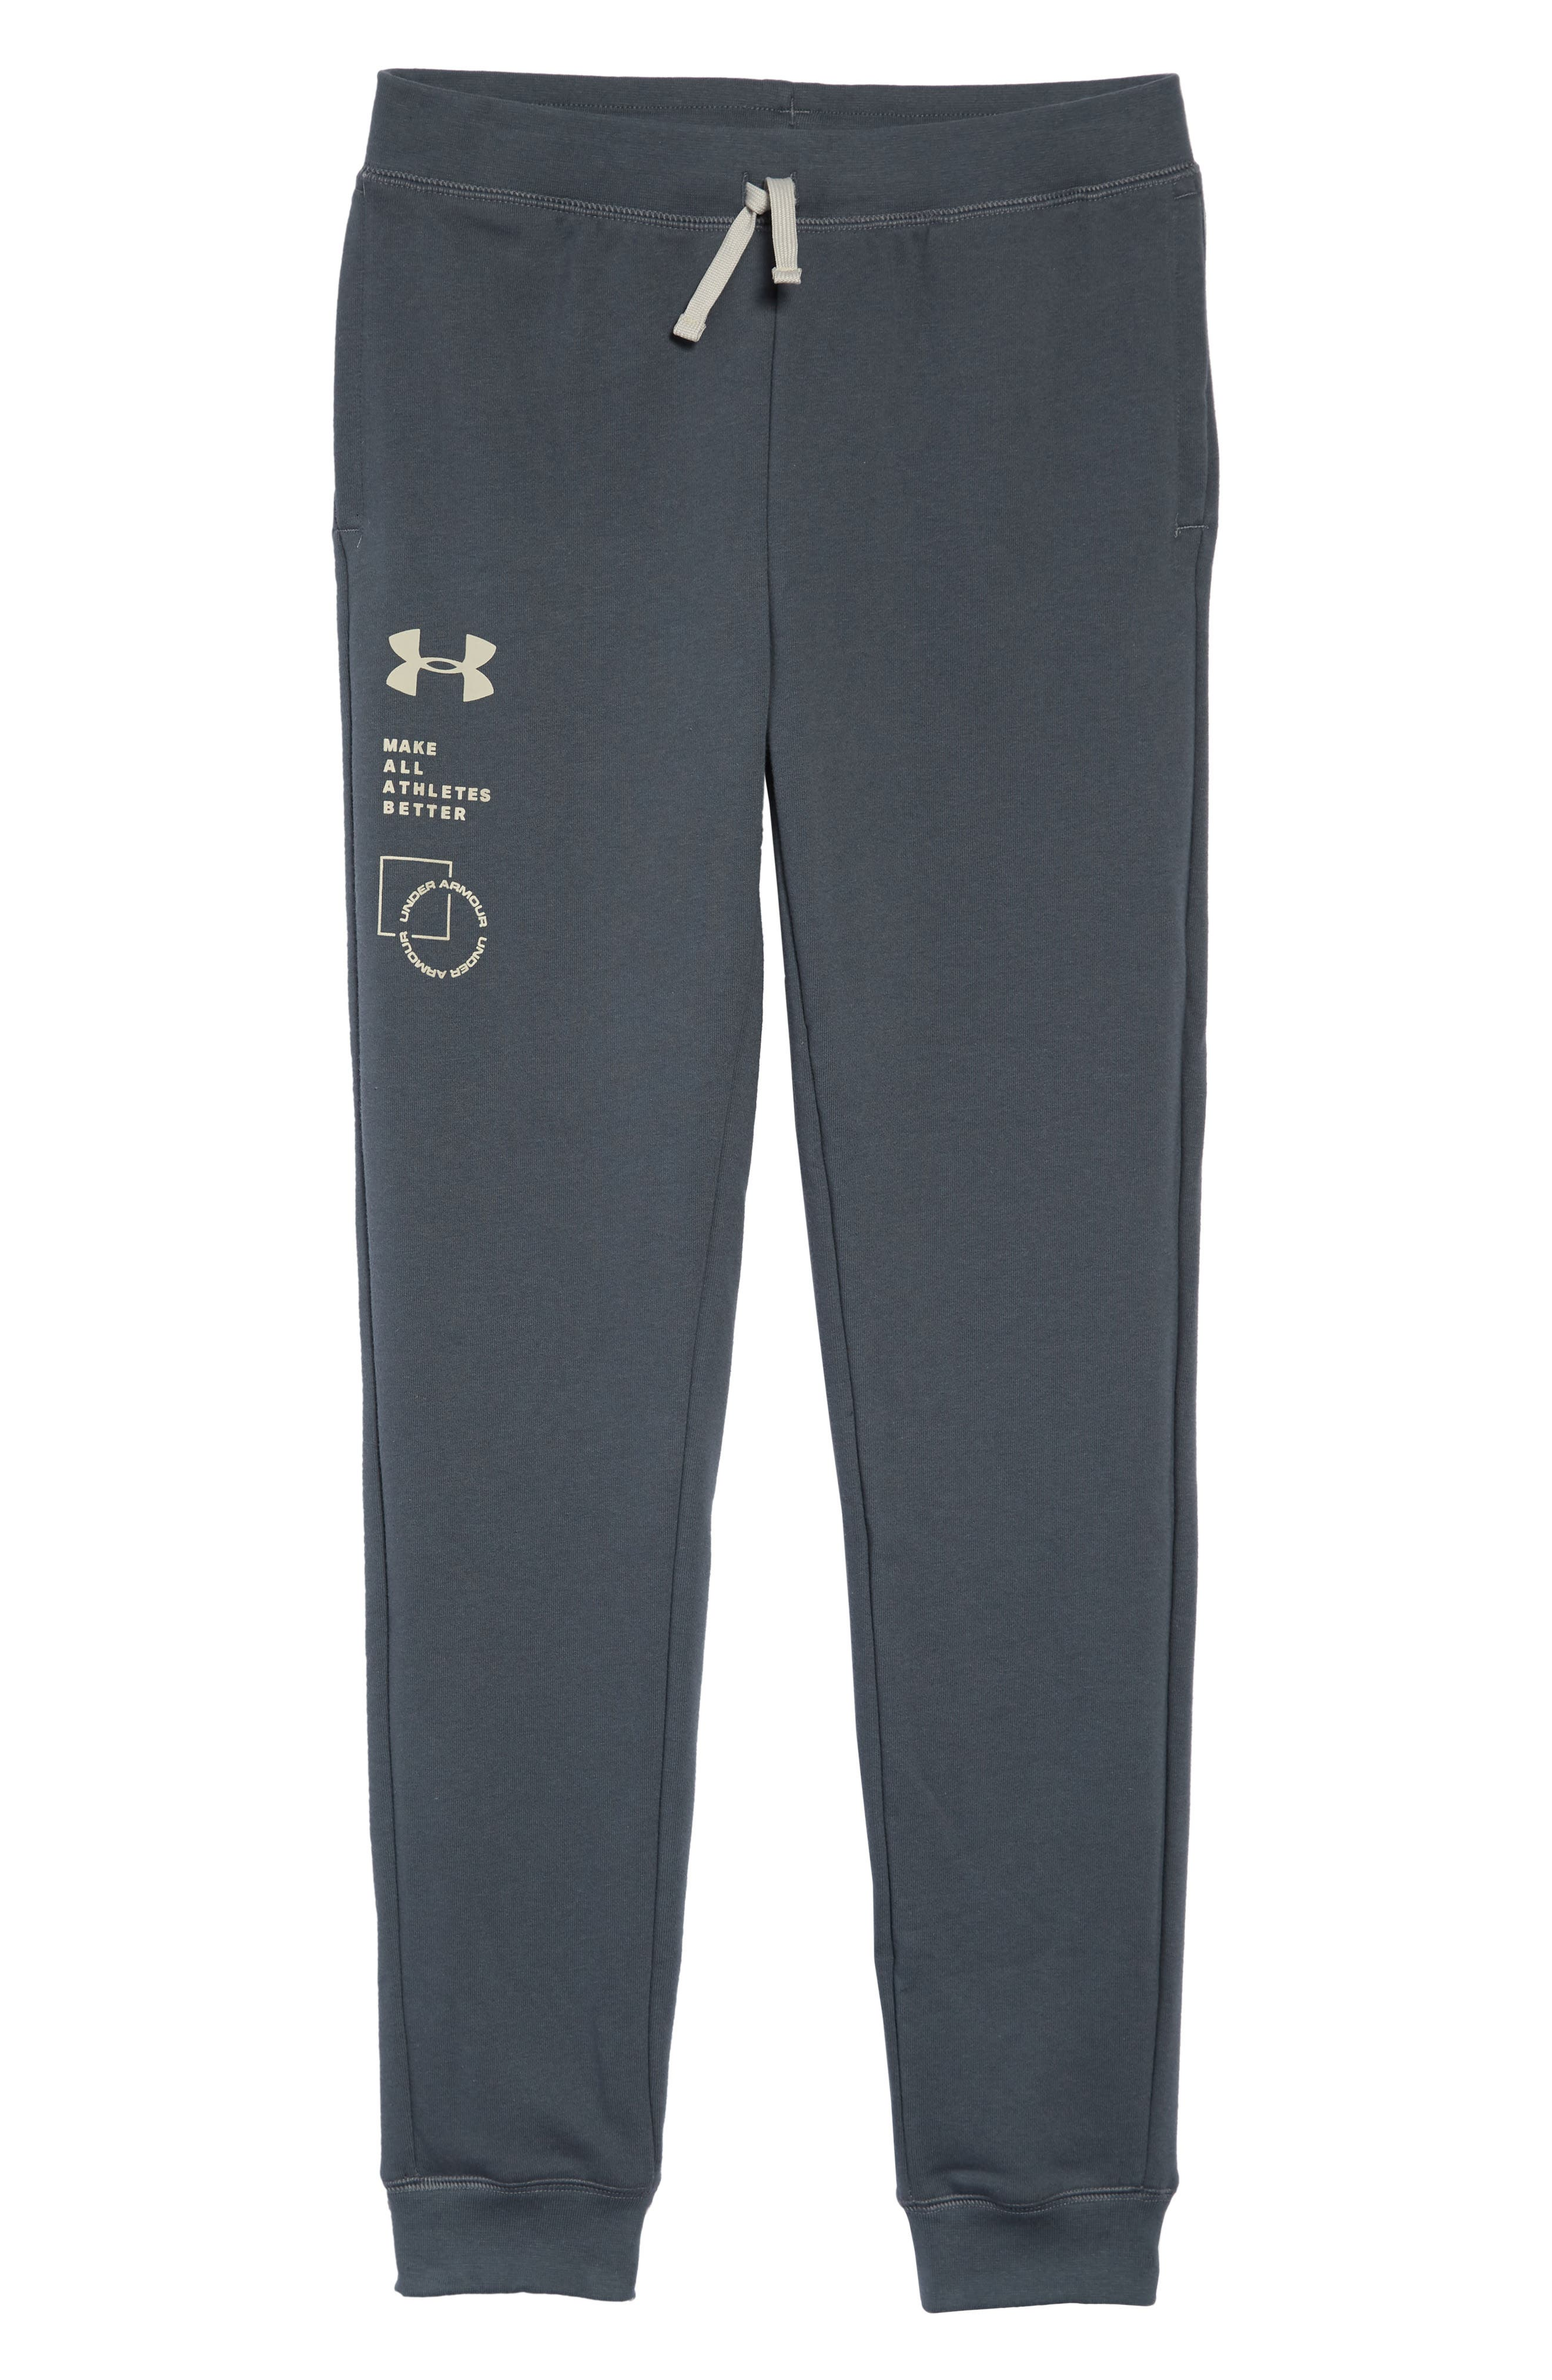 UNDER ARMOUR, Rival French Terry Sweatpants, Main thumbnail 1, color, PITCH GRAY/ KHAKI BASE